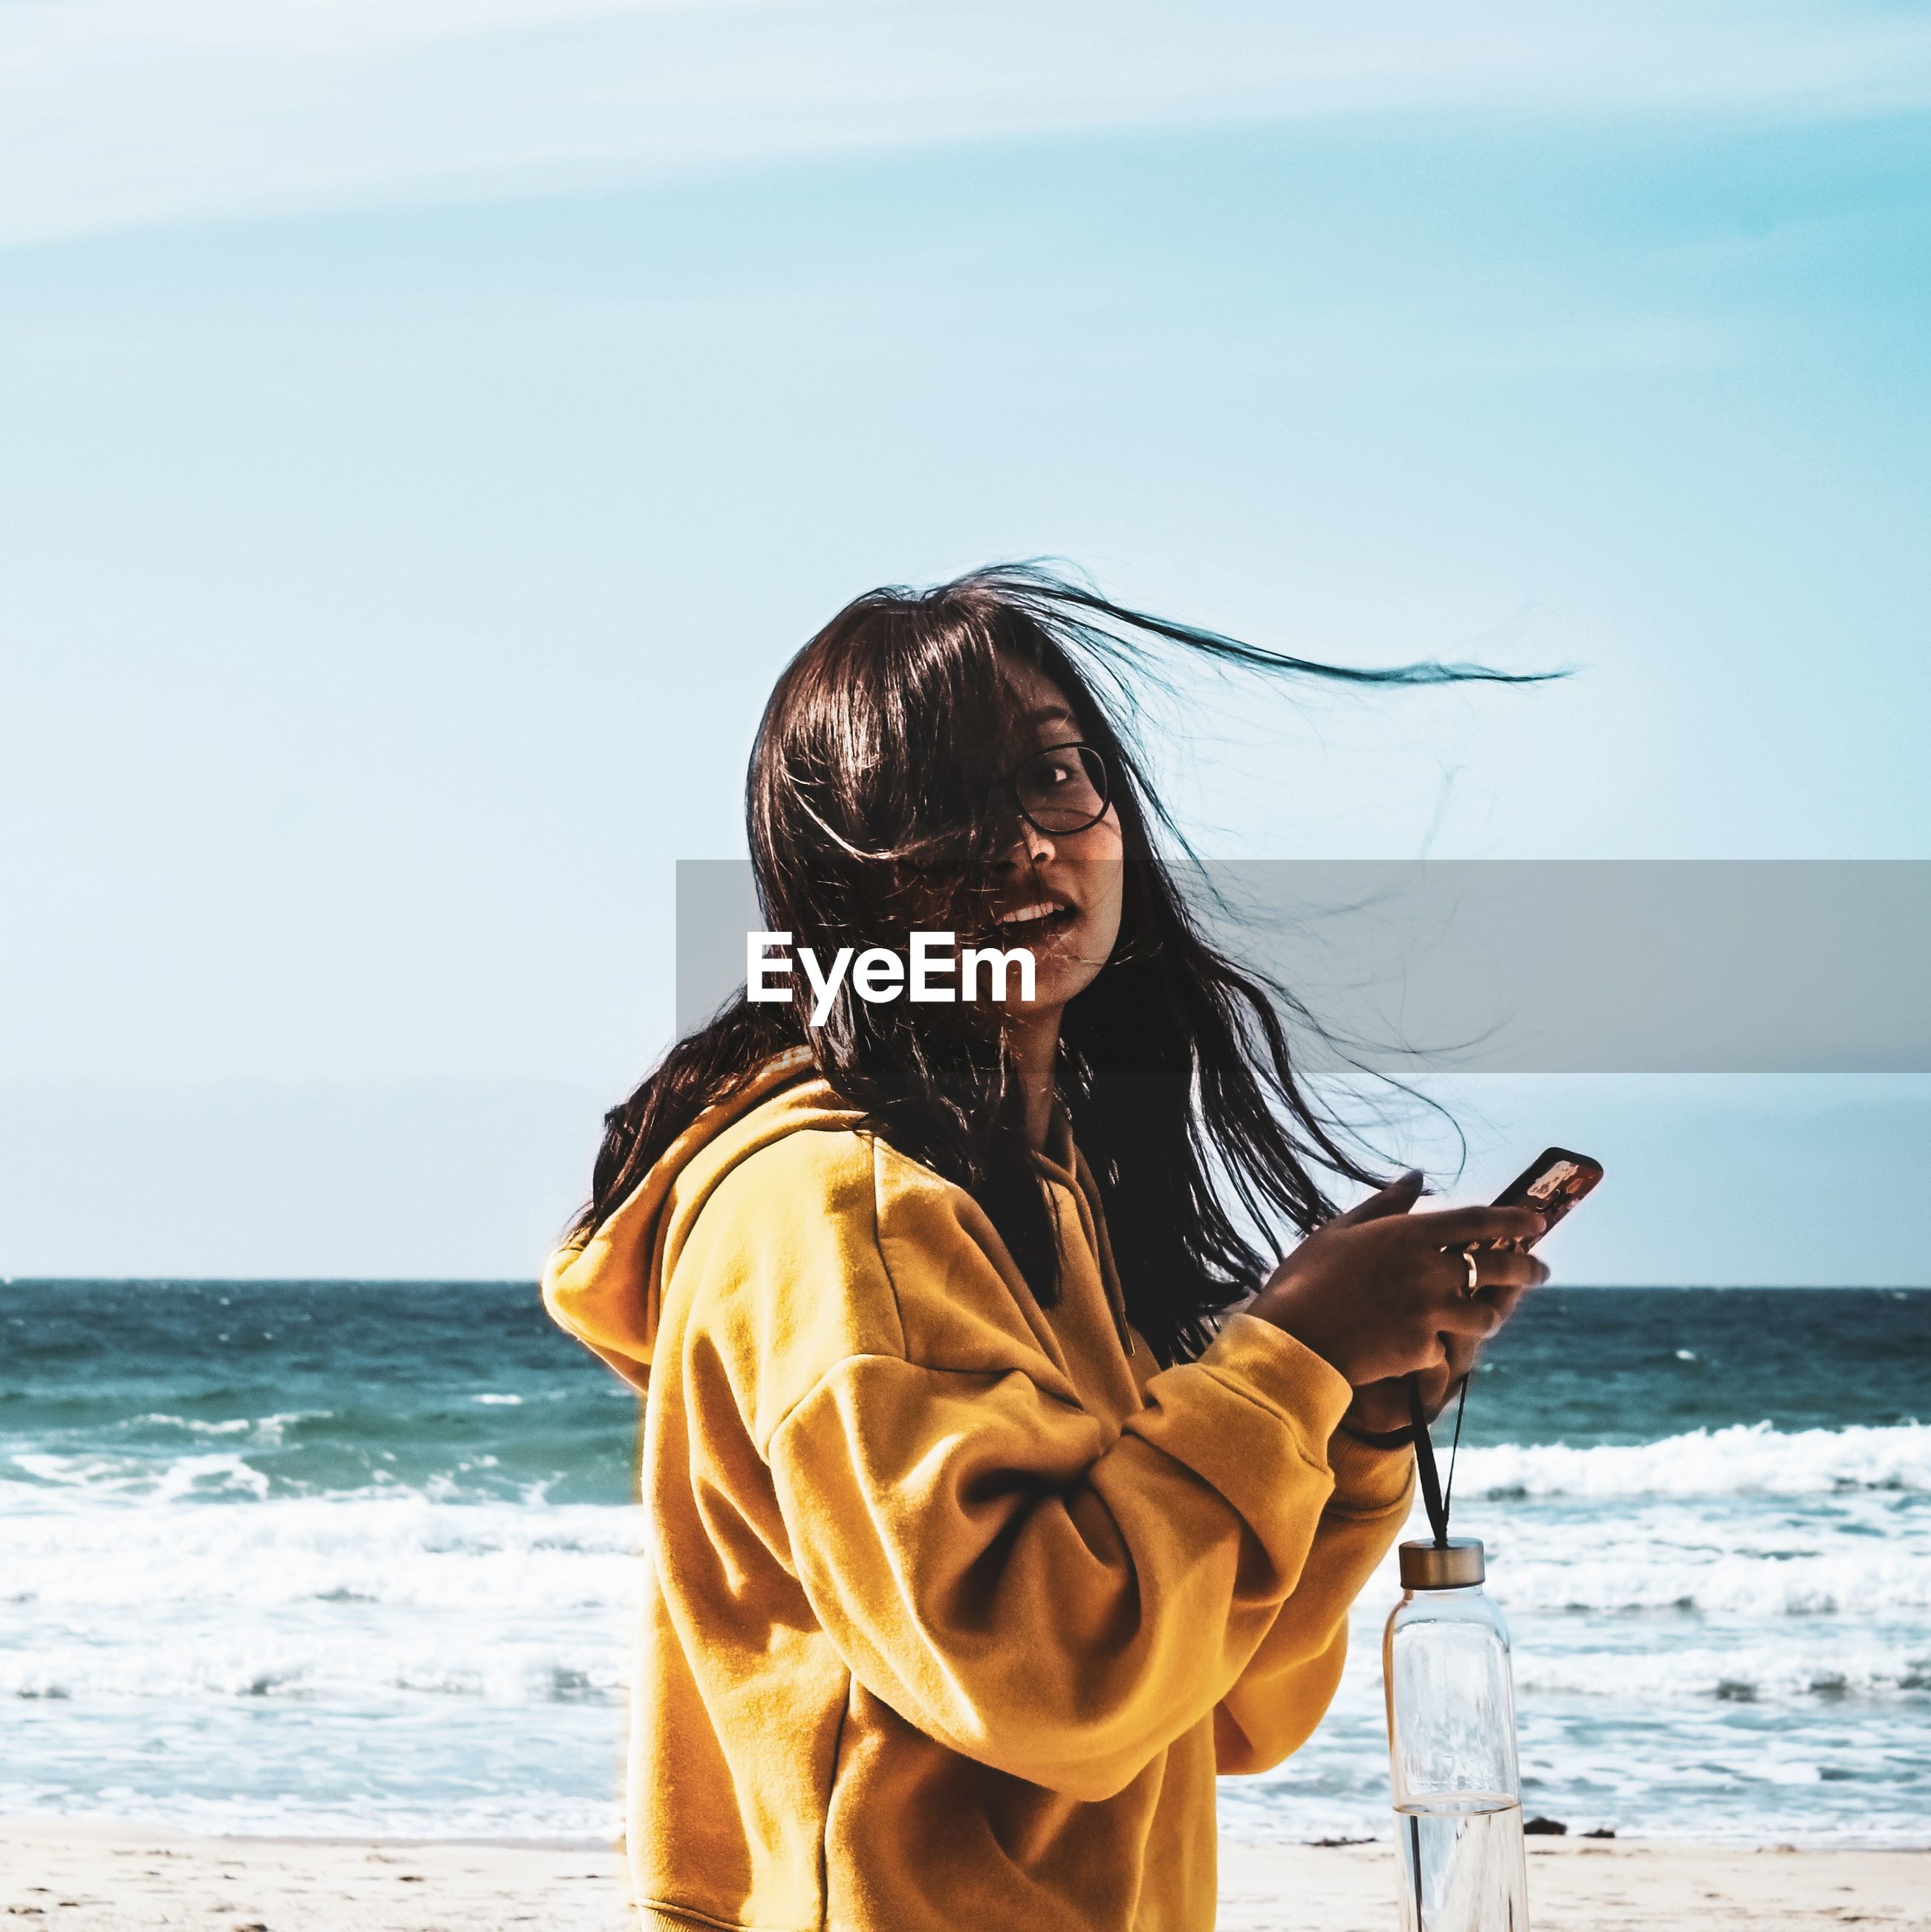 Portrait of woman with tousled hair using phone while standing at beach against sky